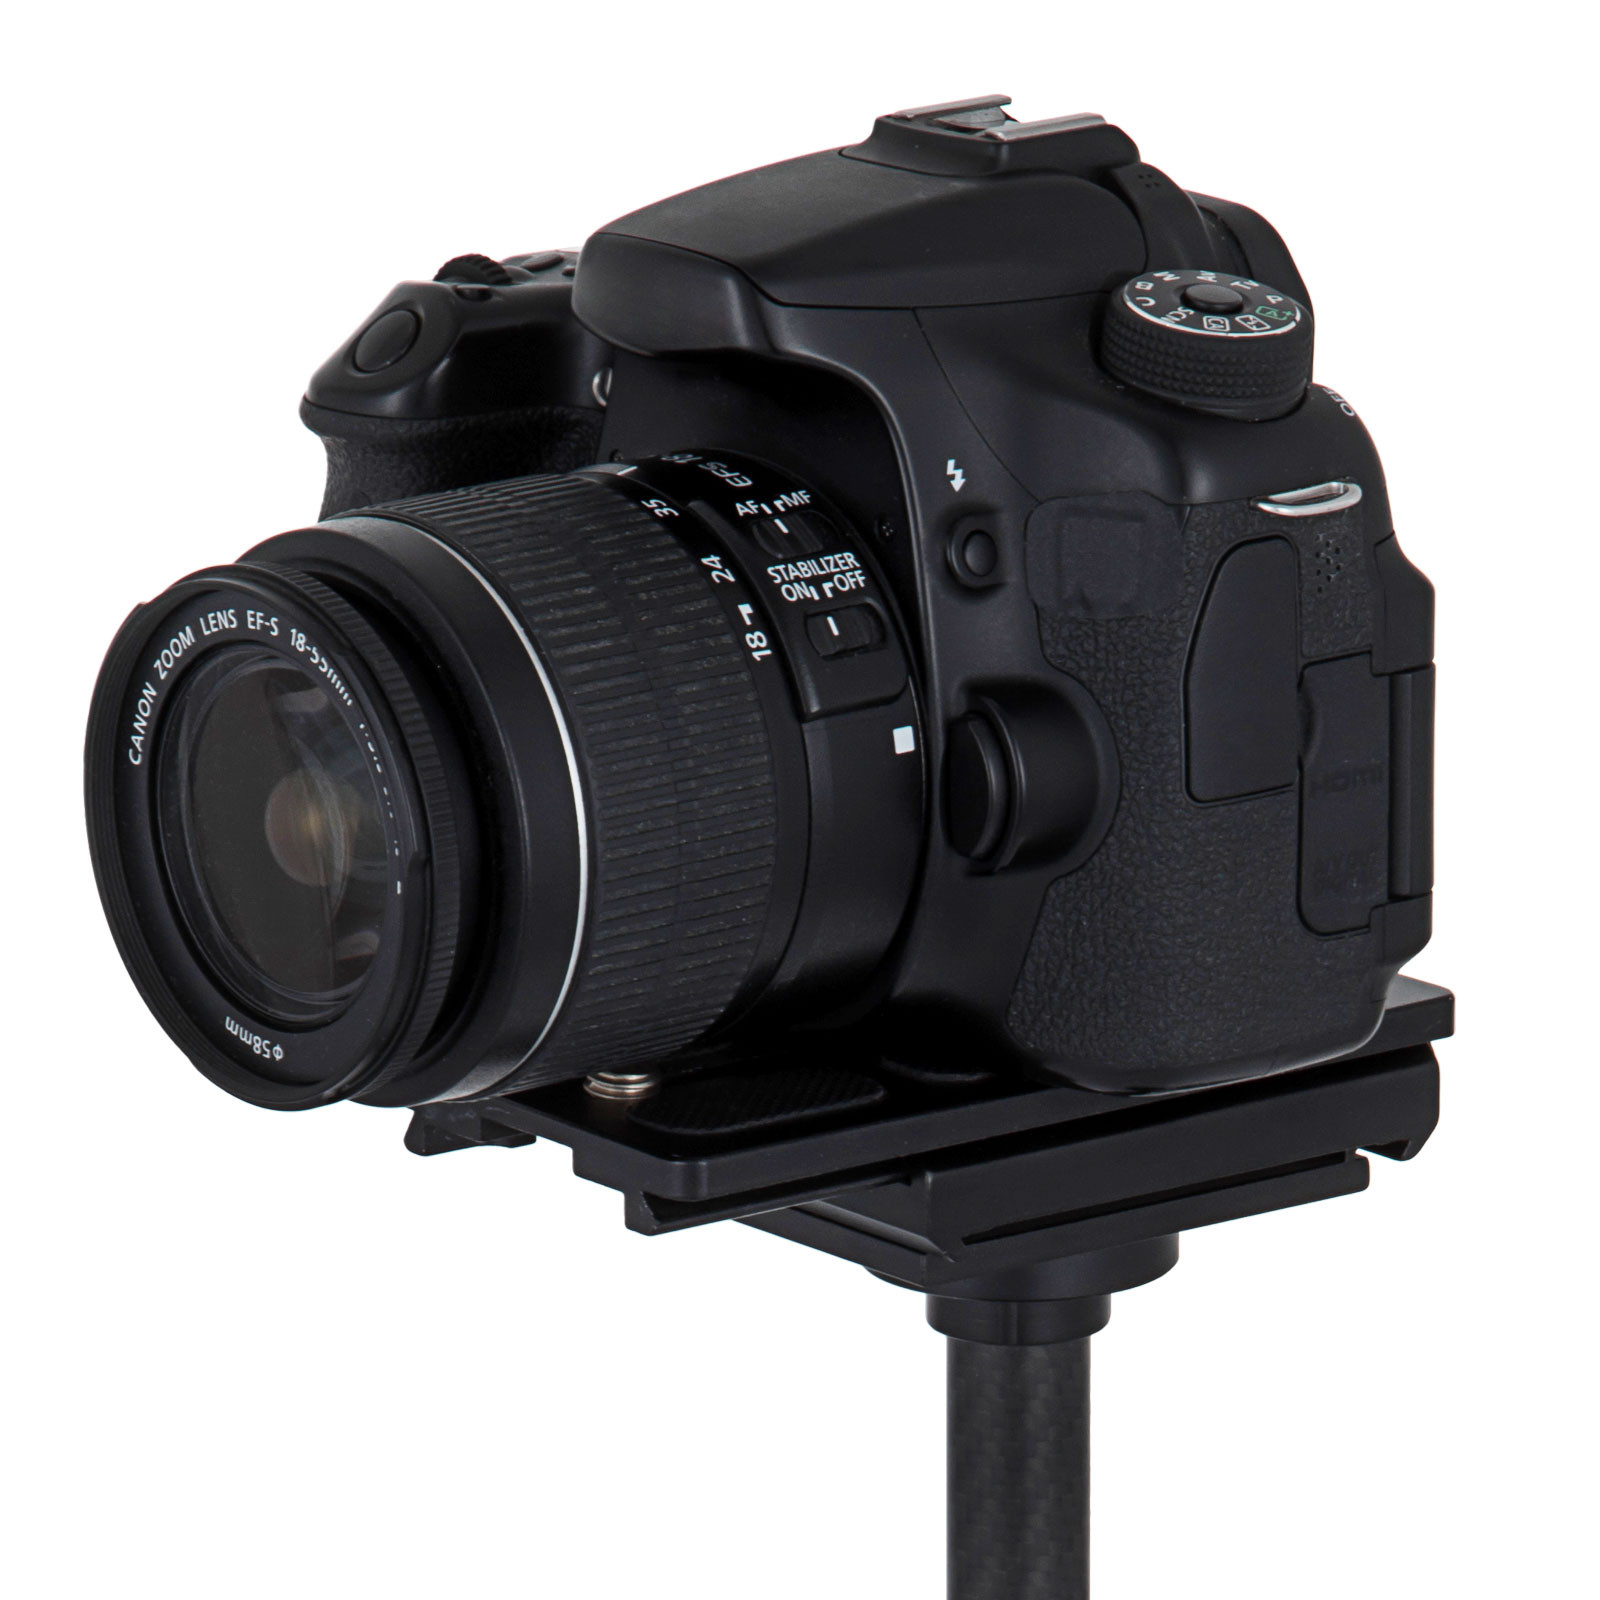 S60T-S60N-Handheld-Steady-Stabilizer-360-For-DSLR-Canon-Camera thumbnail 34